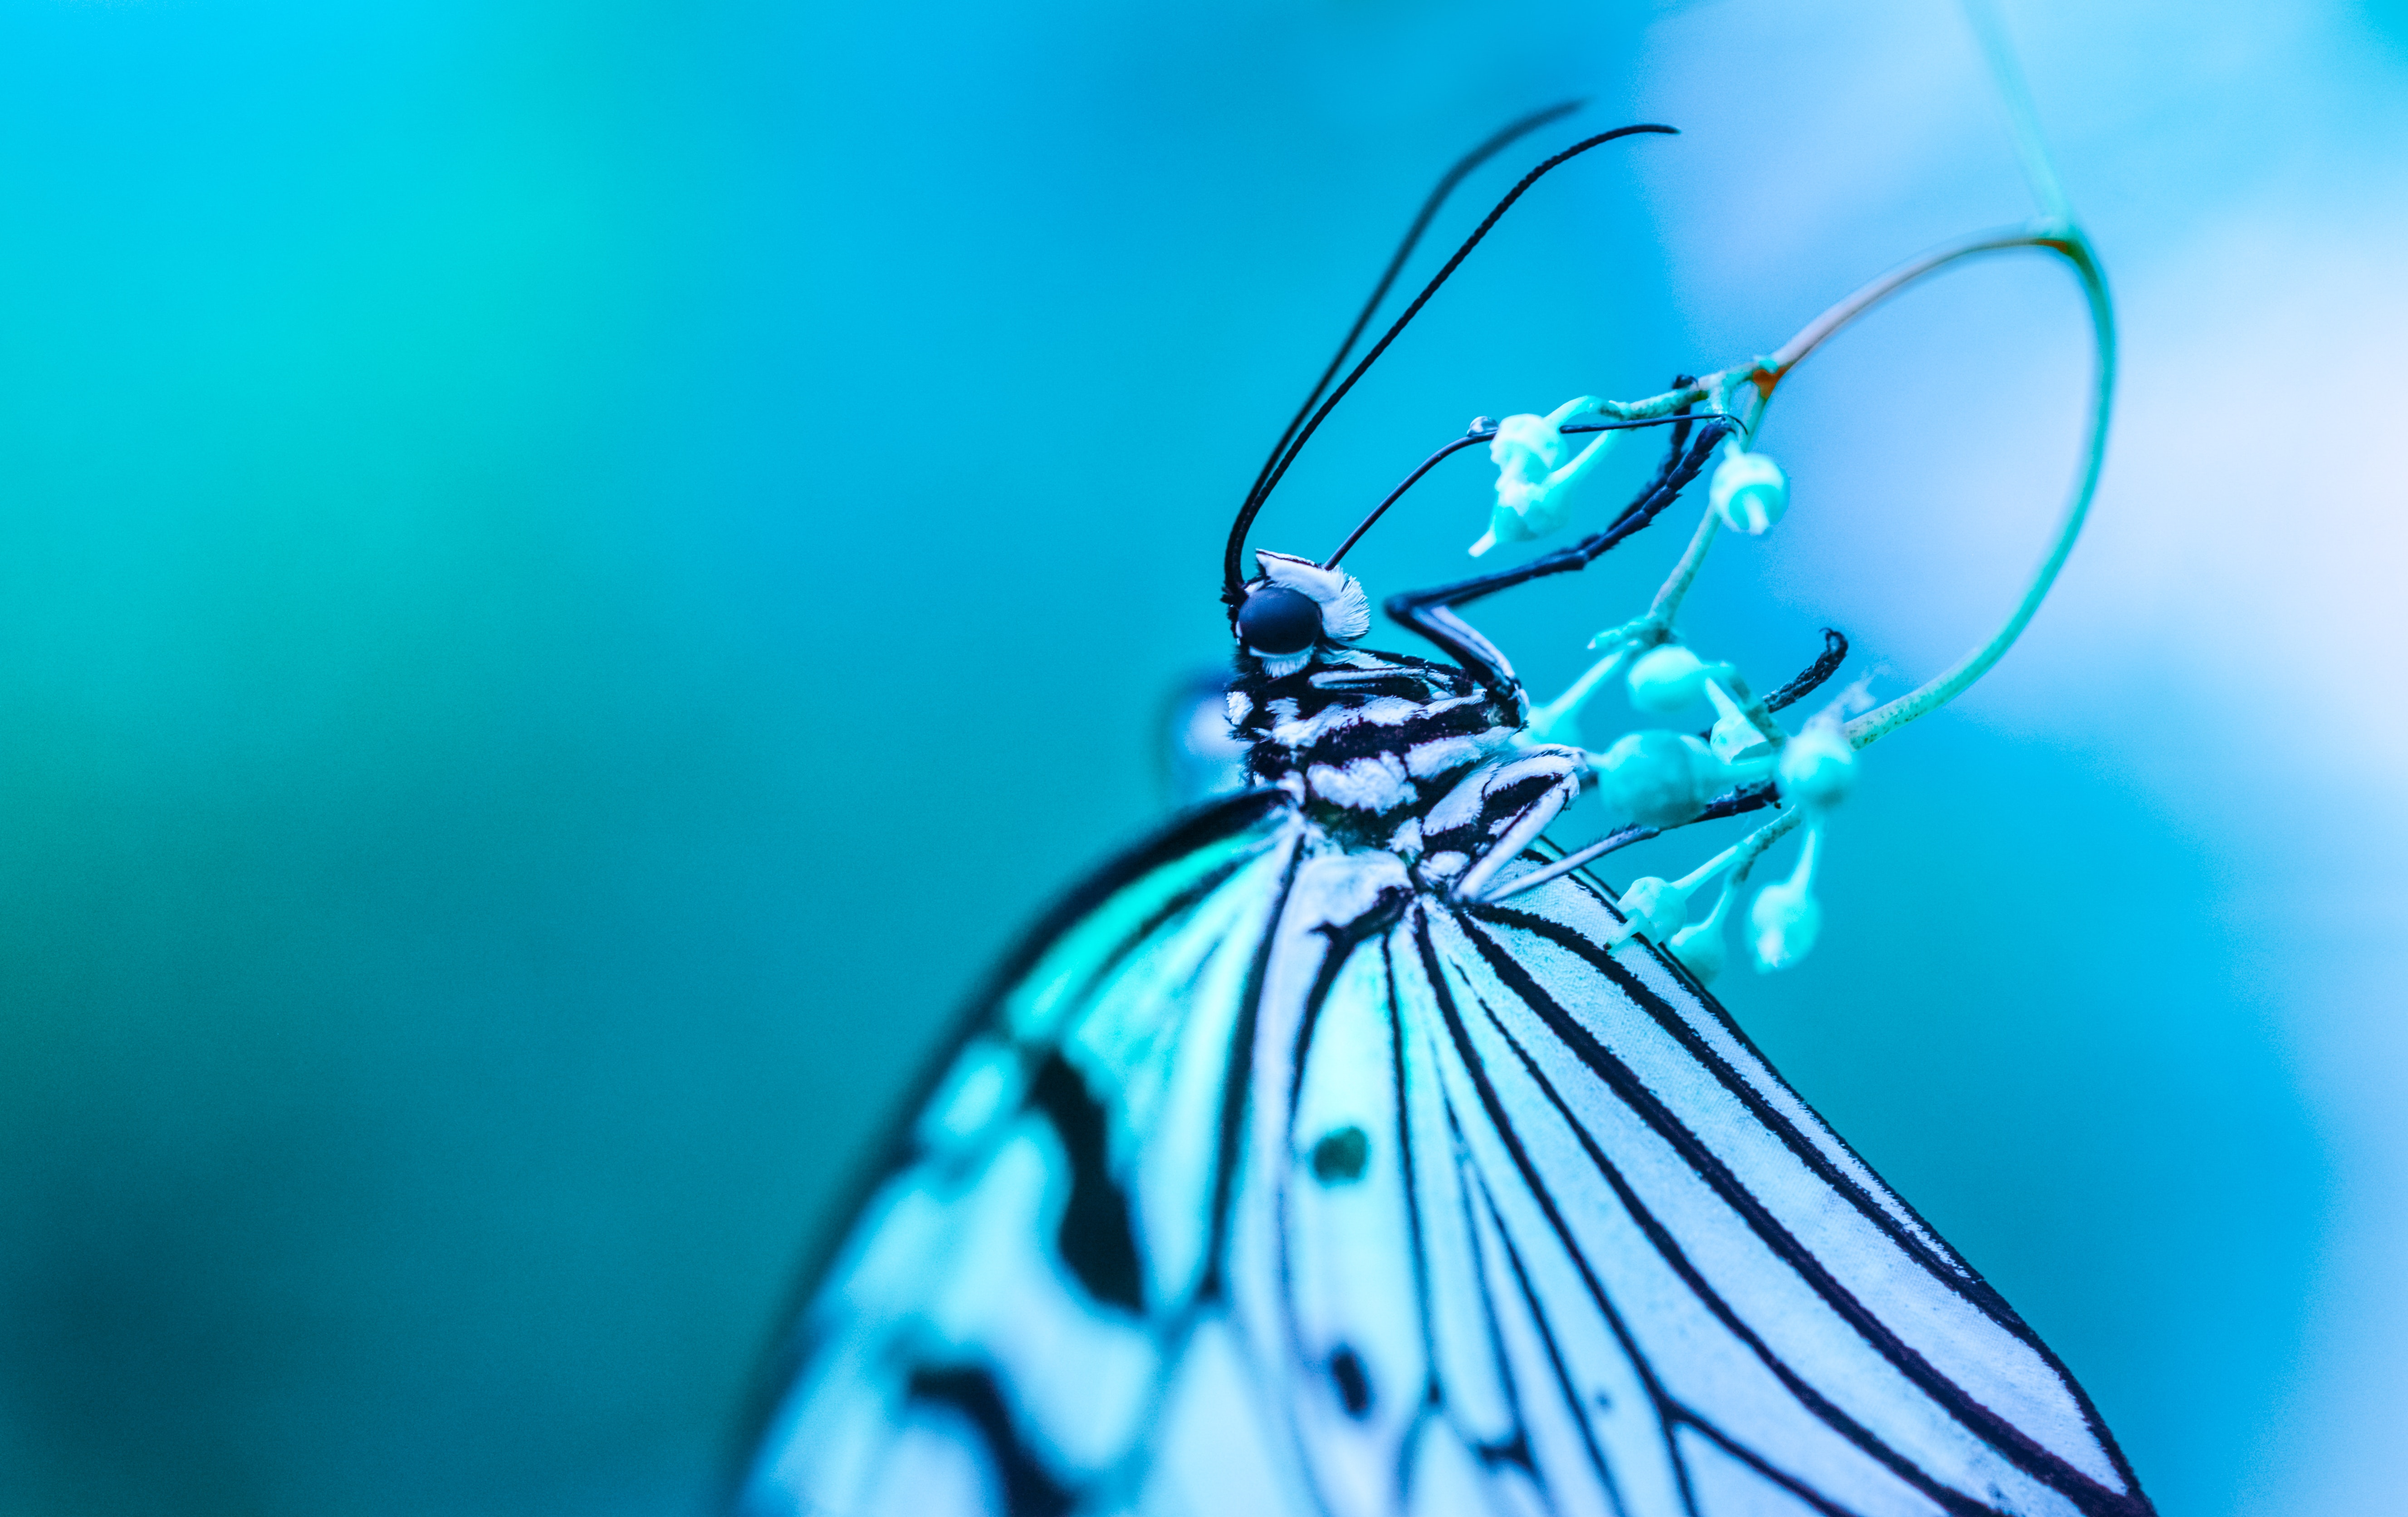 Macro photography of white and black butterfly